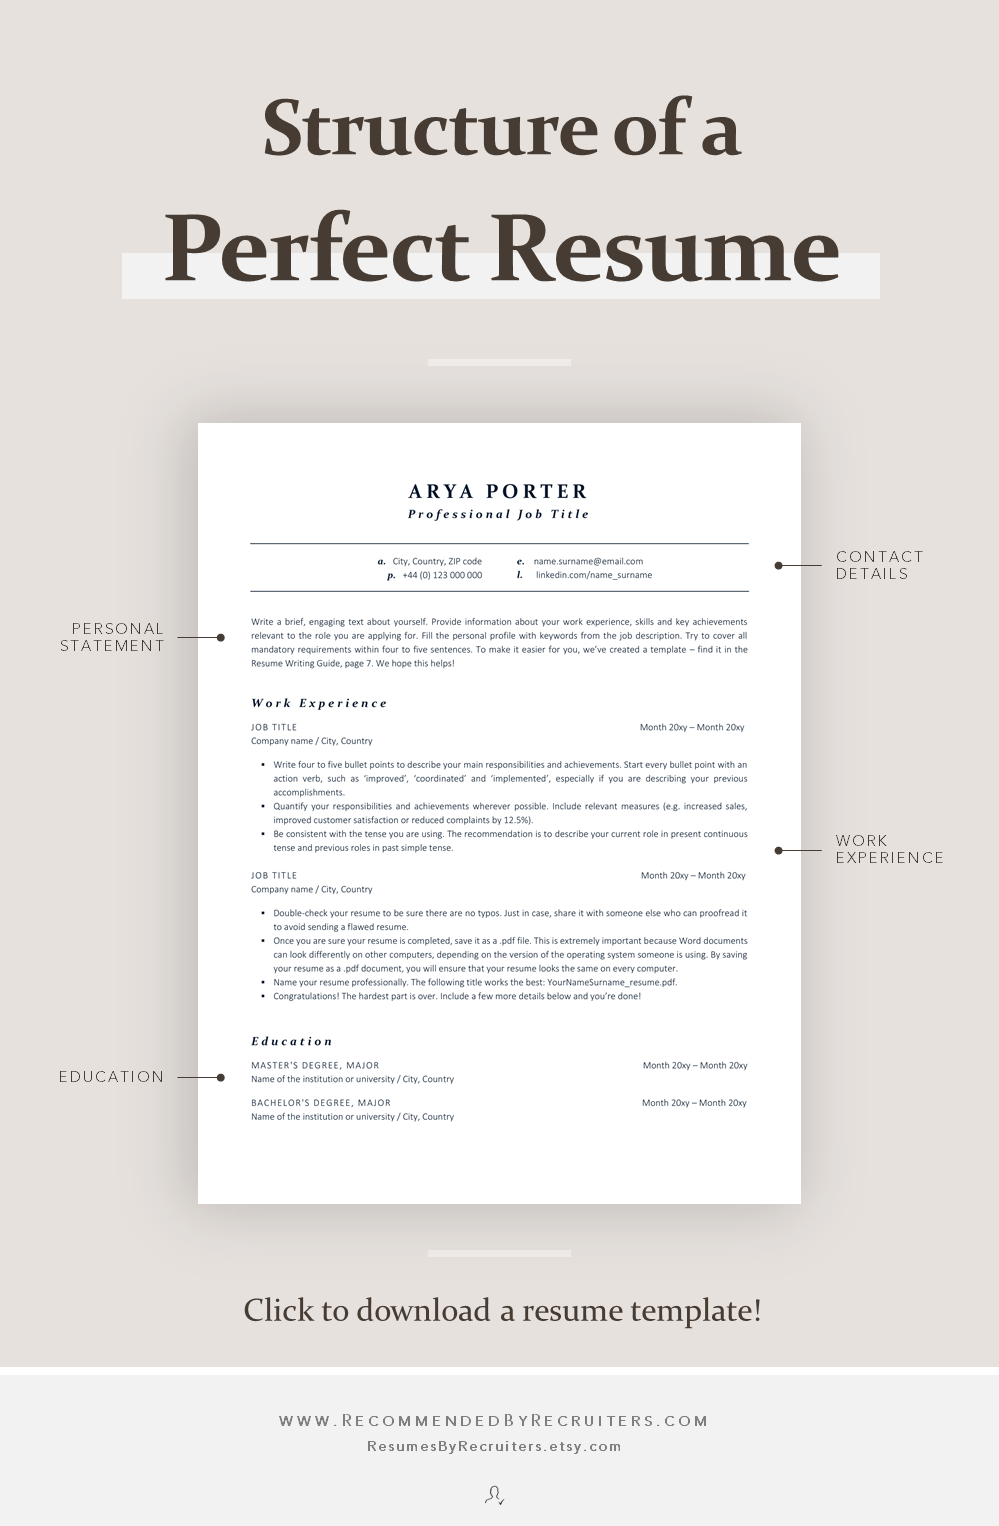 Pin on ATS Resume Templates